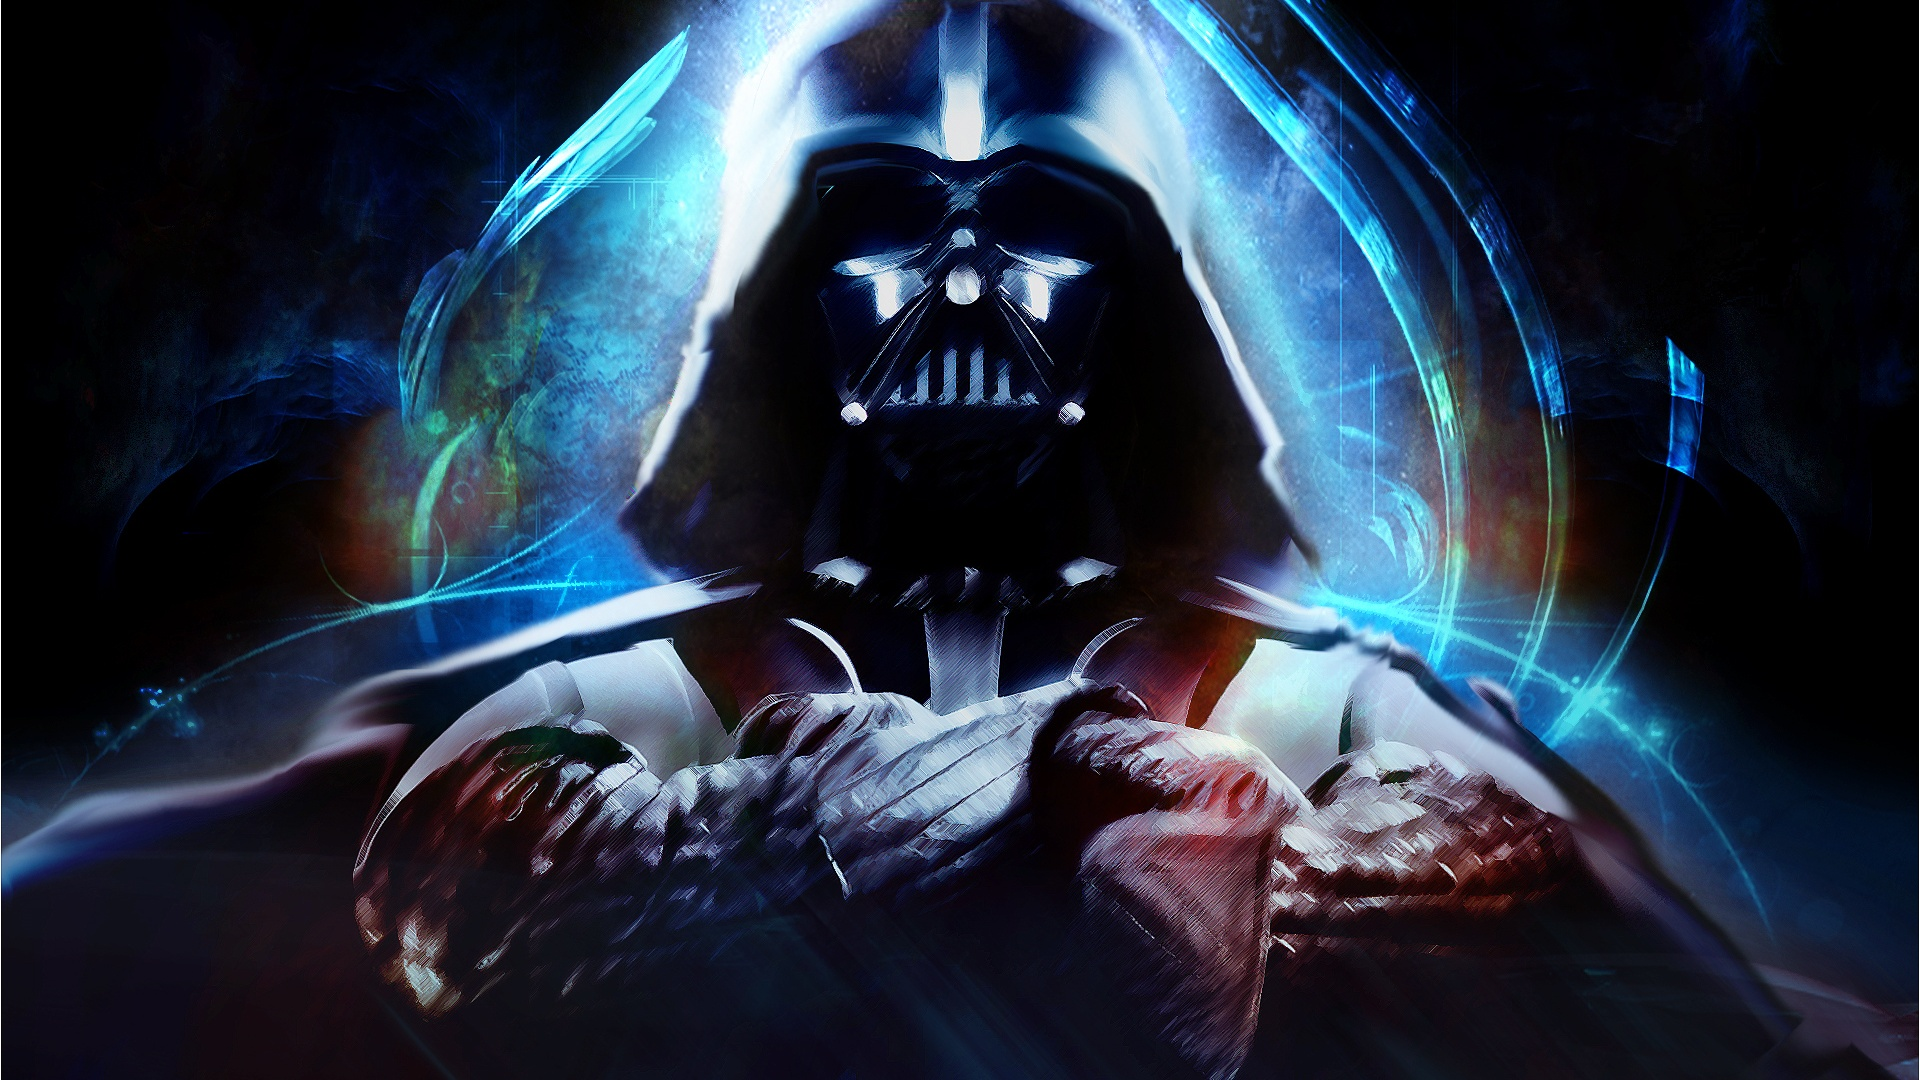 Star Wars wallpaper - 1920x1080